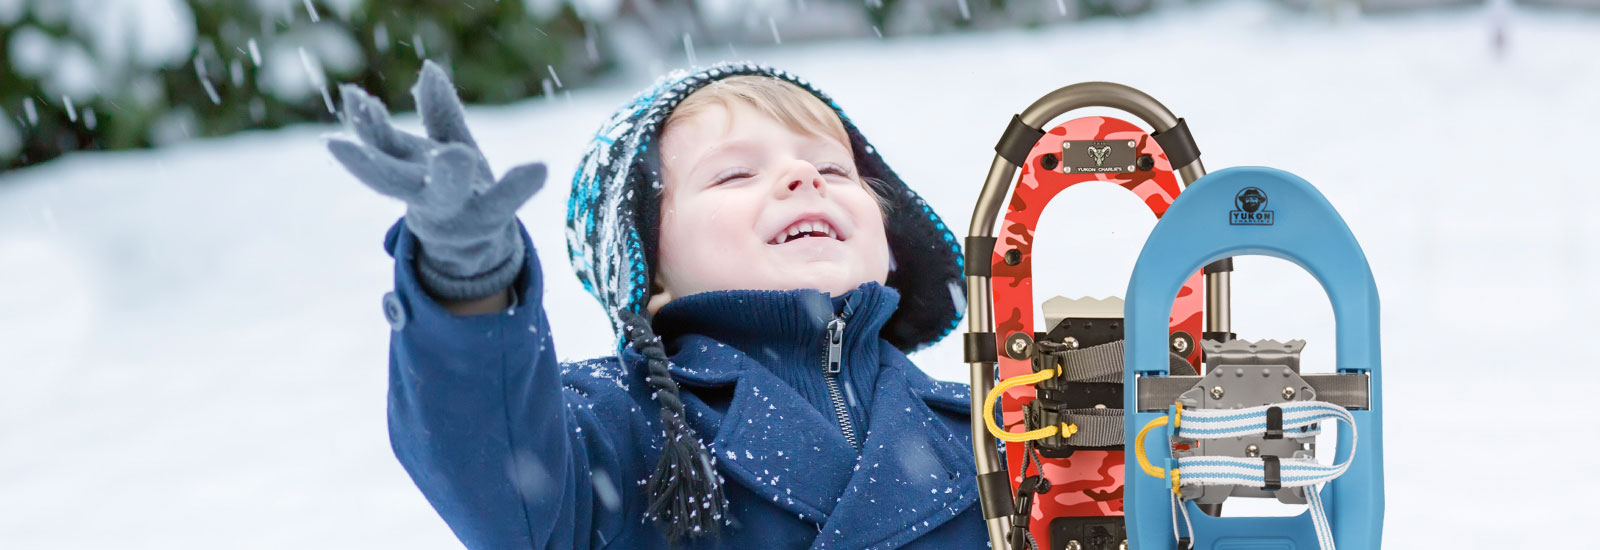 Snowshoes, Trekking Poles, Sleds, and Traction Aids by Yukon